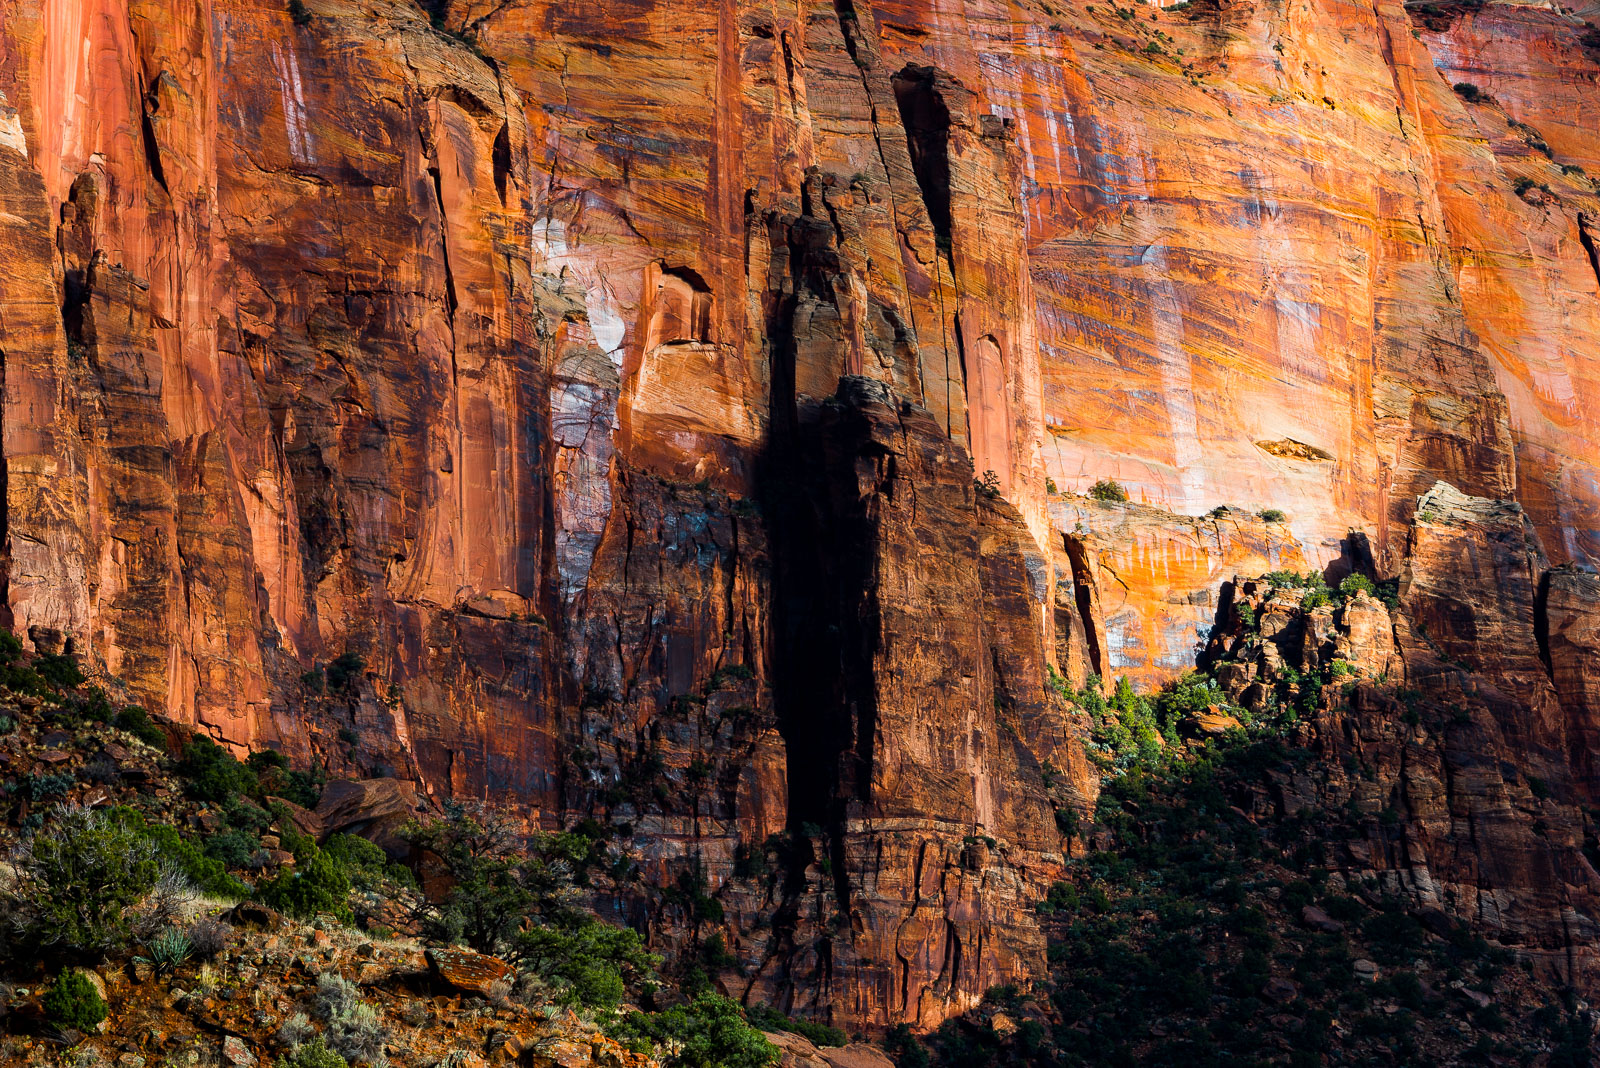 illuminated sandstone cliff in Zion